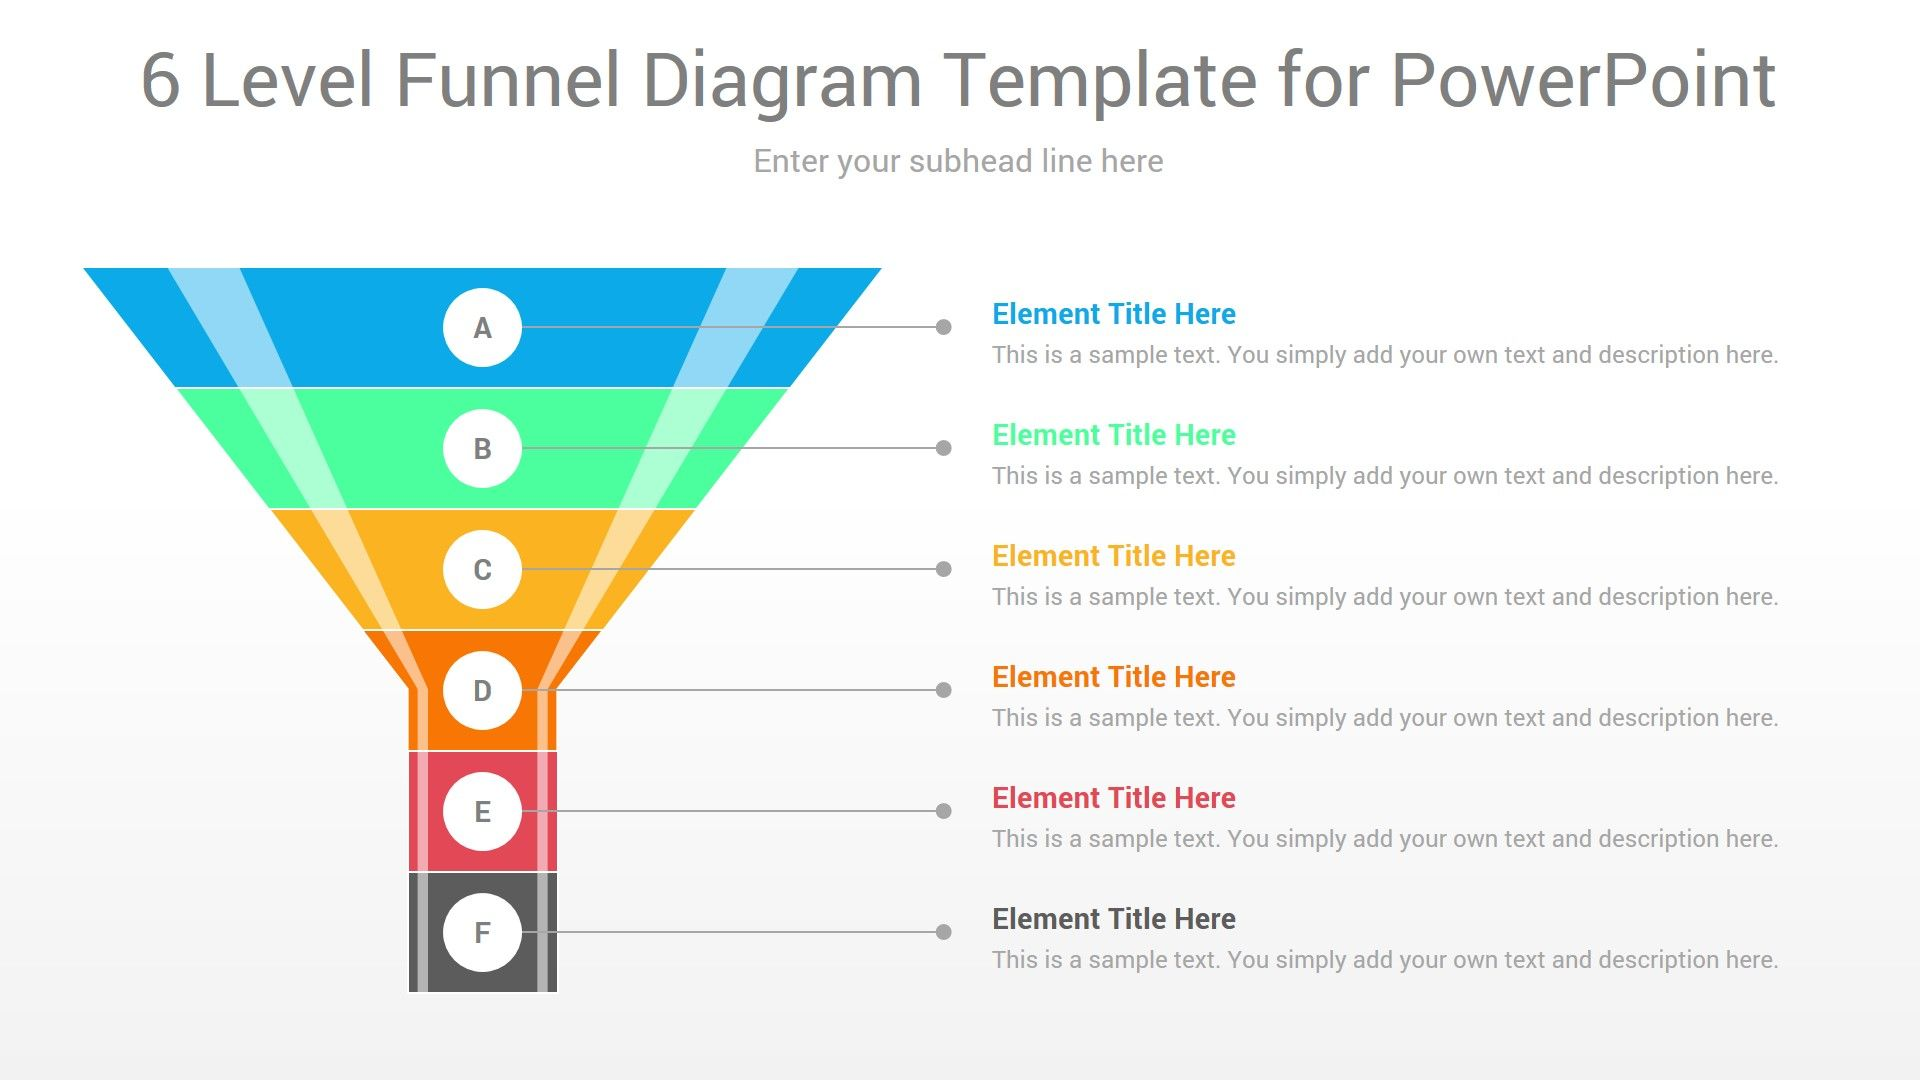 6 Level Funnel Diagram Template For Powerpoint In 2020 Powerpoint Templates Powerpoint Diagram